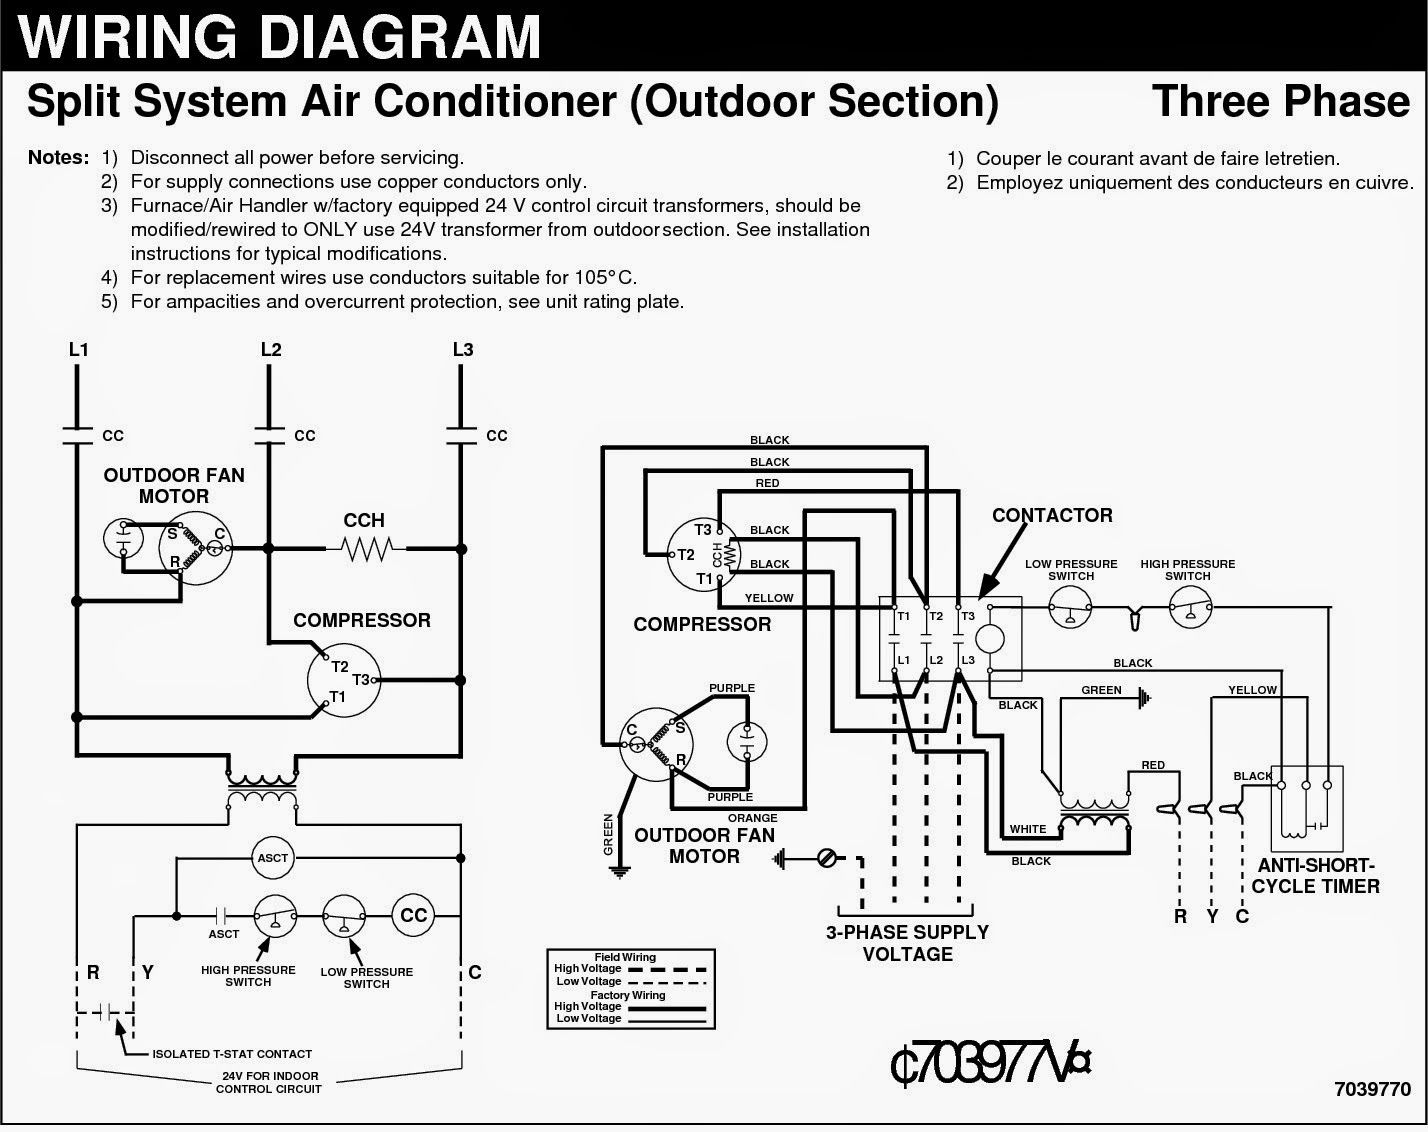 Wiring Three Phase Air Conditioning - wiring diagram on the net on